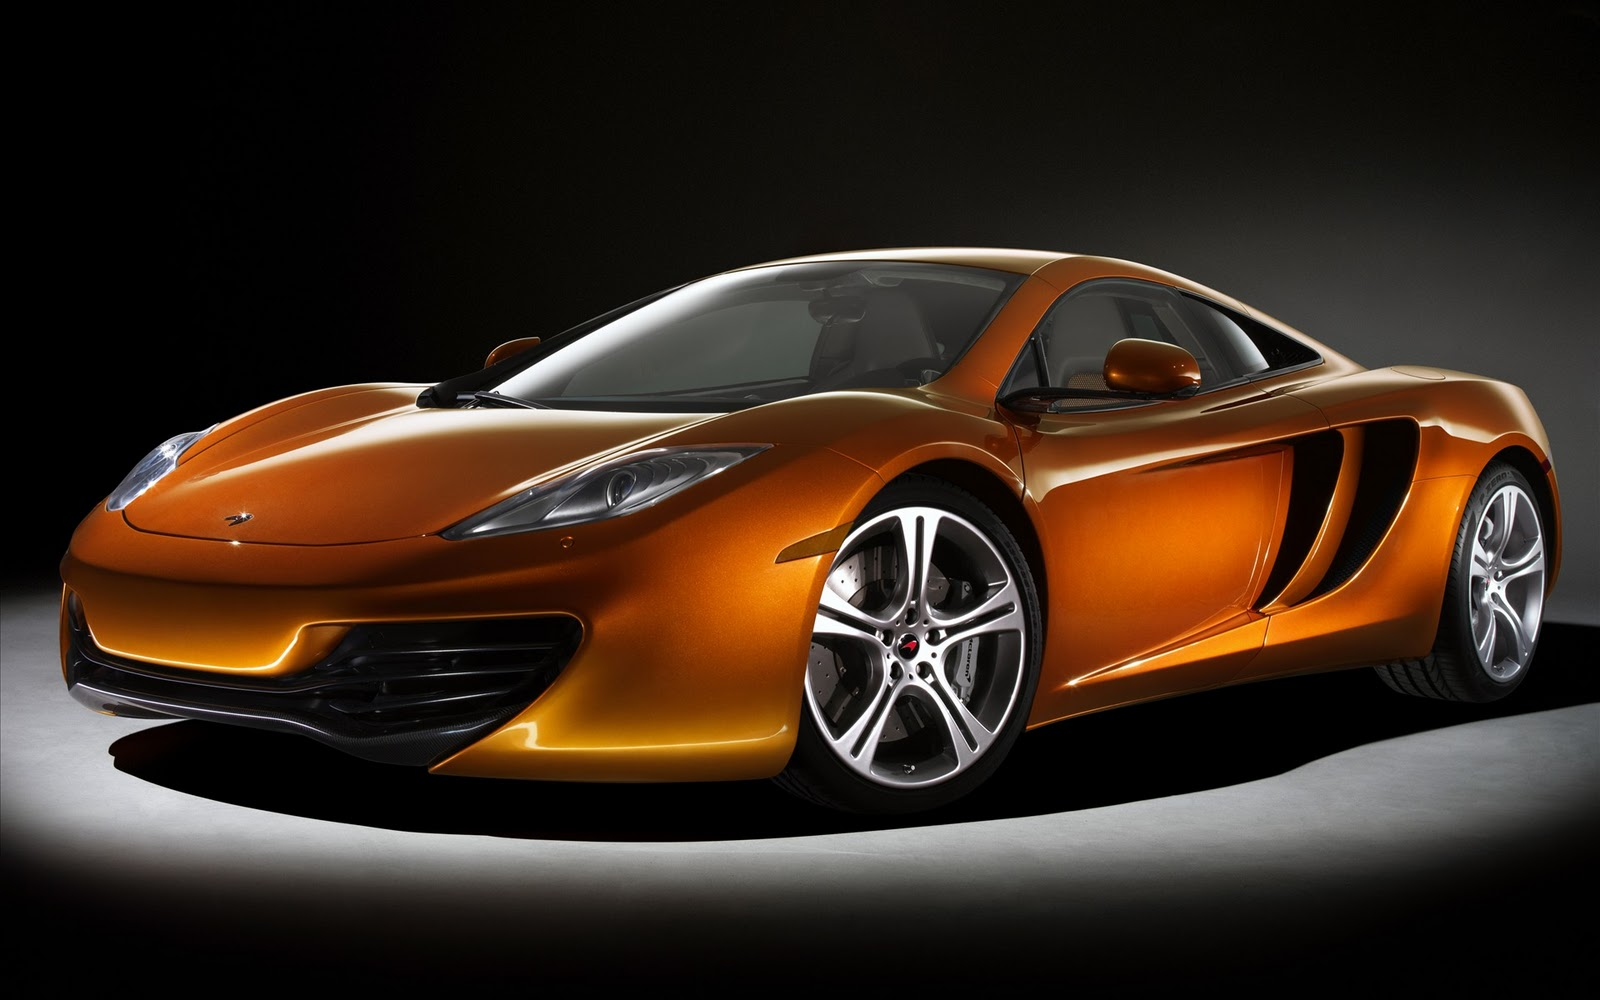 Cool cars wallpapers 2011 Online Auto Book 1600x1000